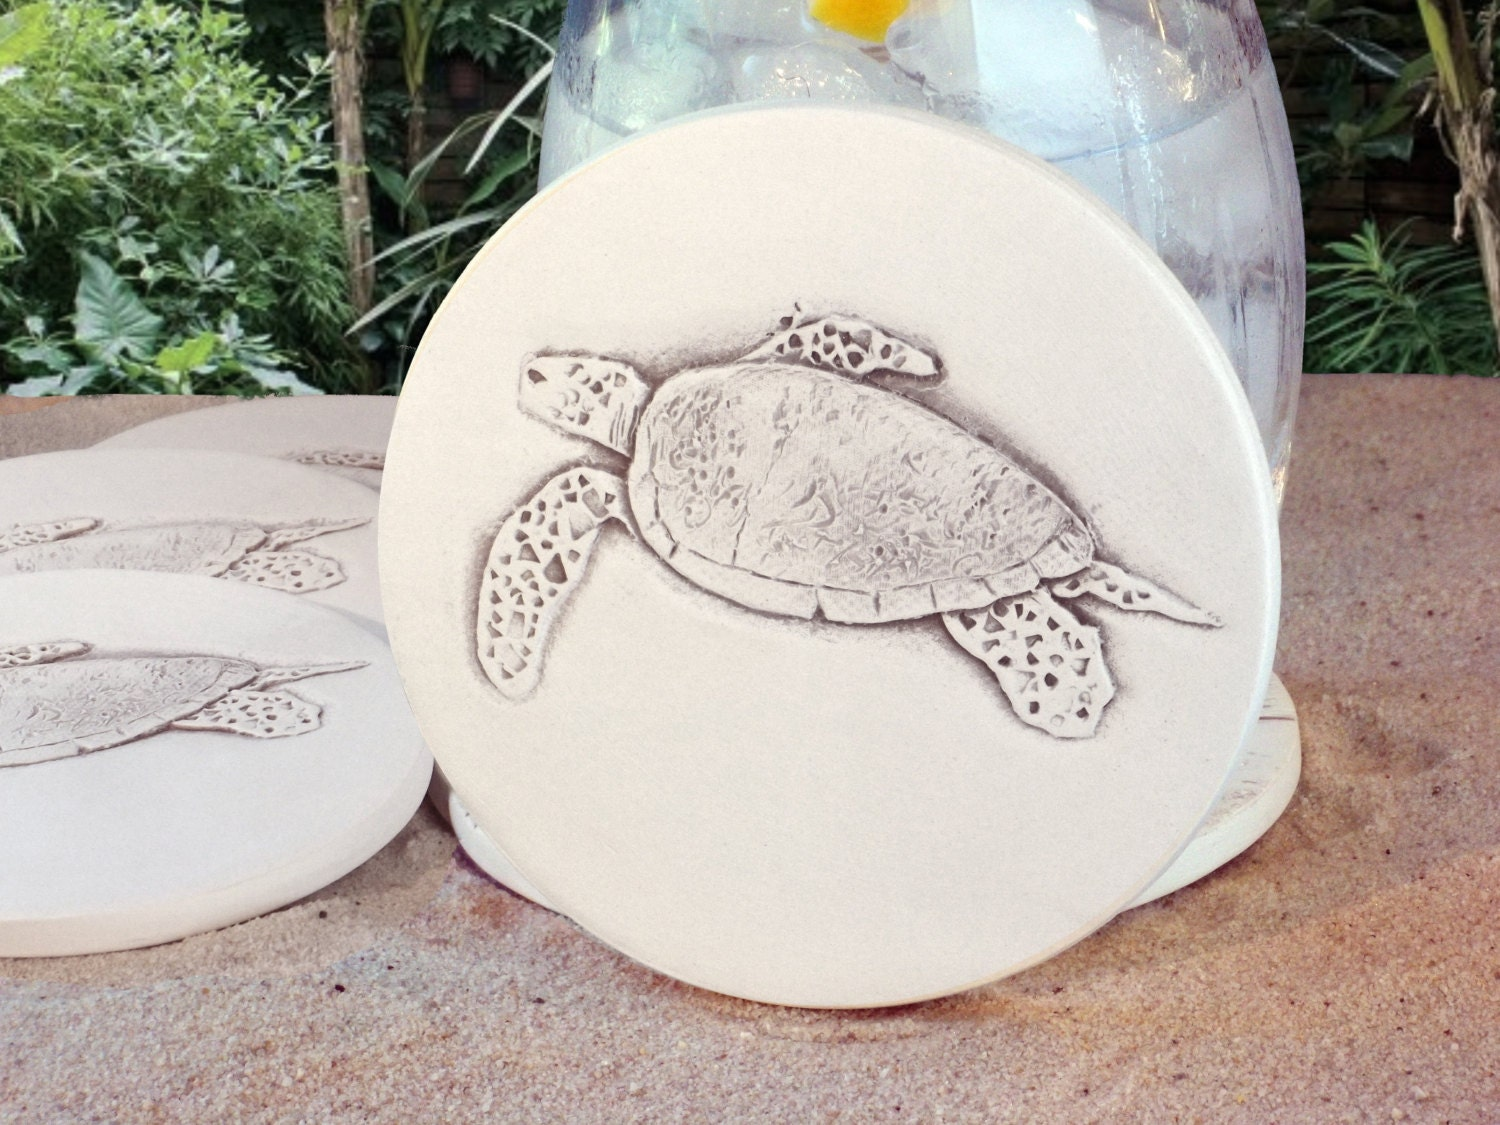 Sea turtle drink coasters absorbent coasters beach house - Drink coasters absorbent ...